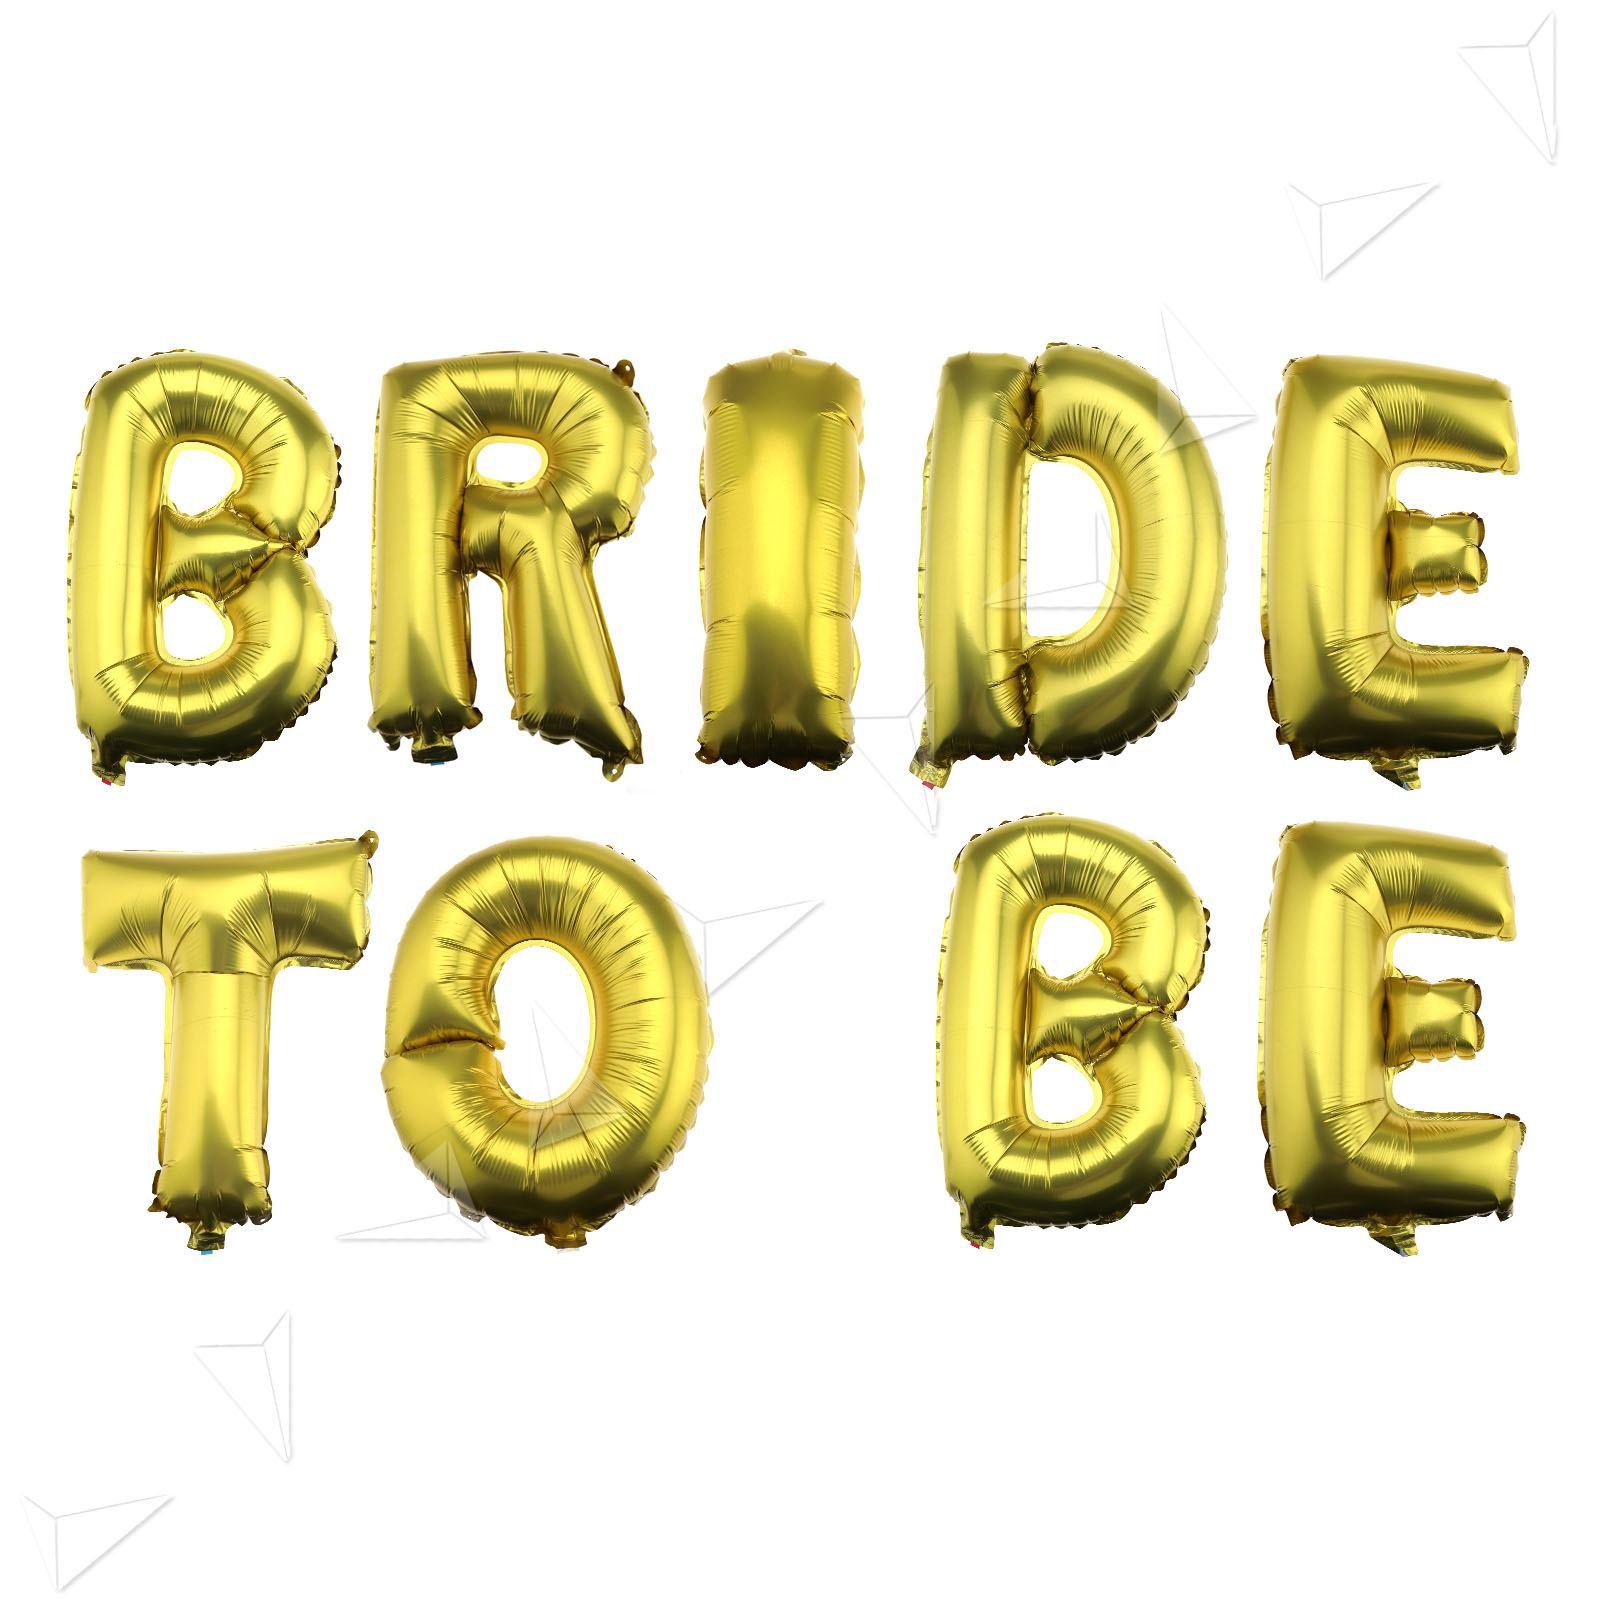 shiny 16 foil balloons bride to be gold letter for wedding bridal hen party